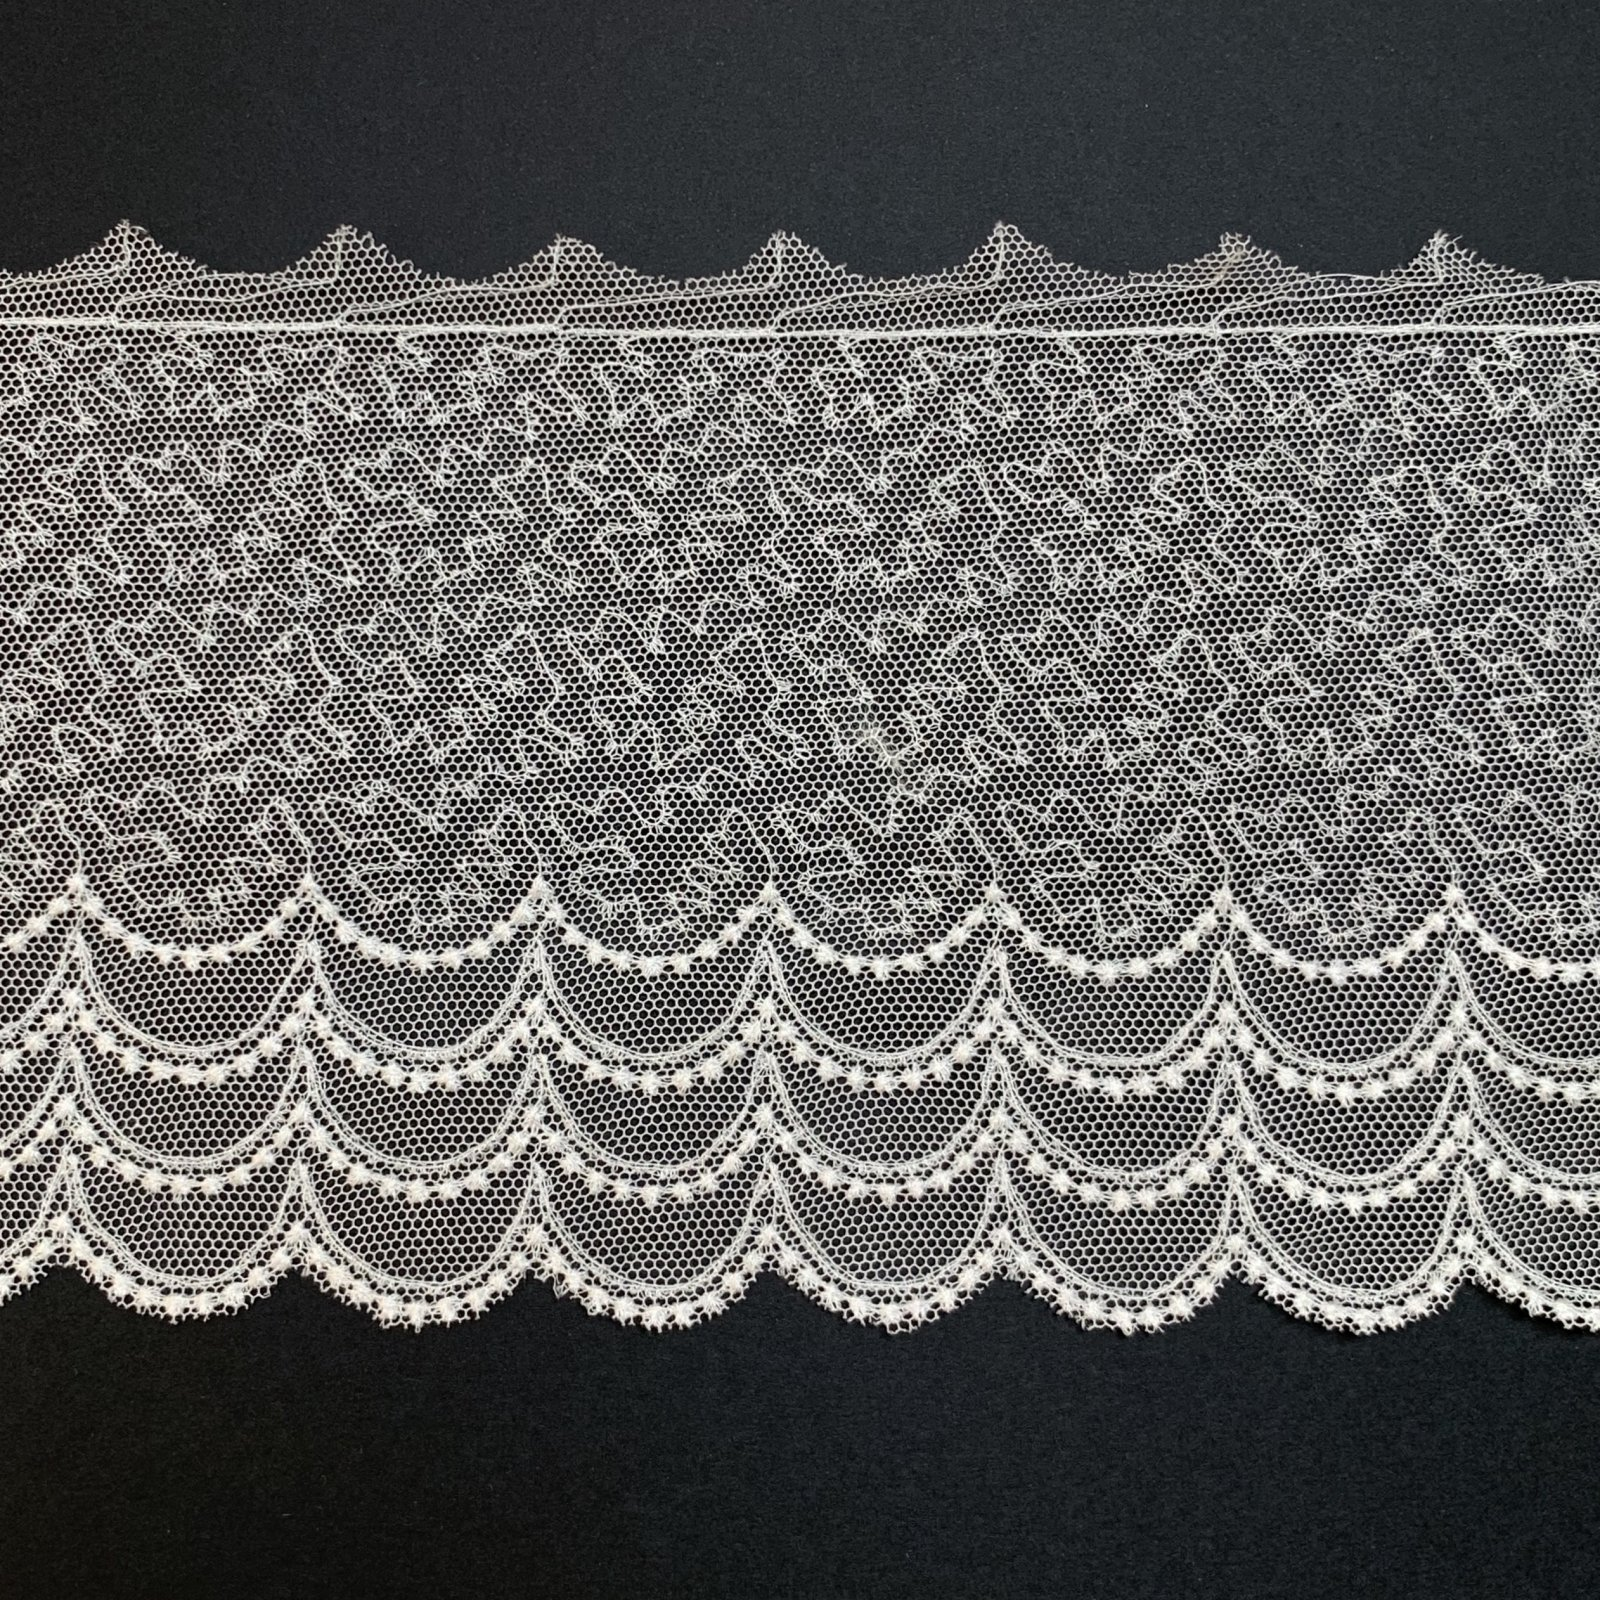 English Netting Lace Edging 4.5 Inches Soft White 431-D